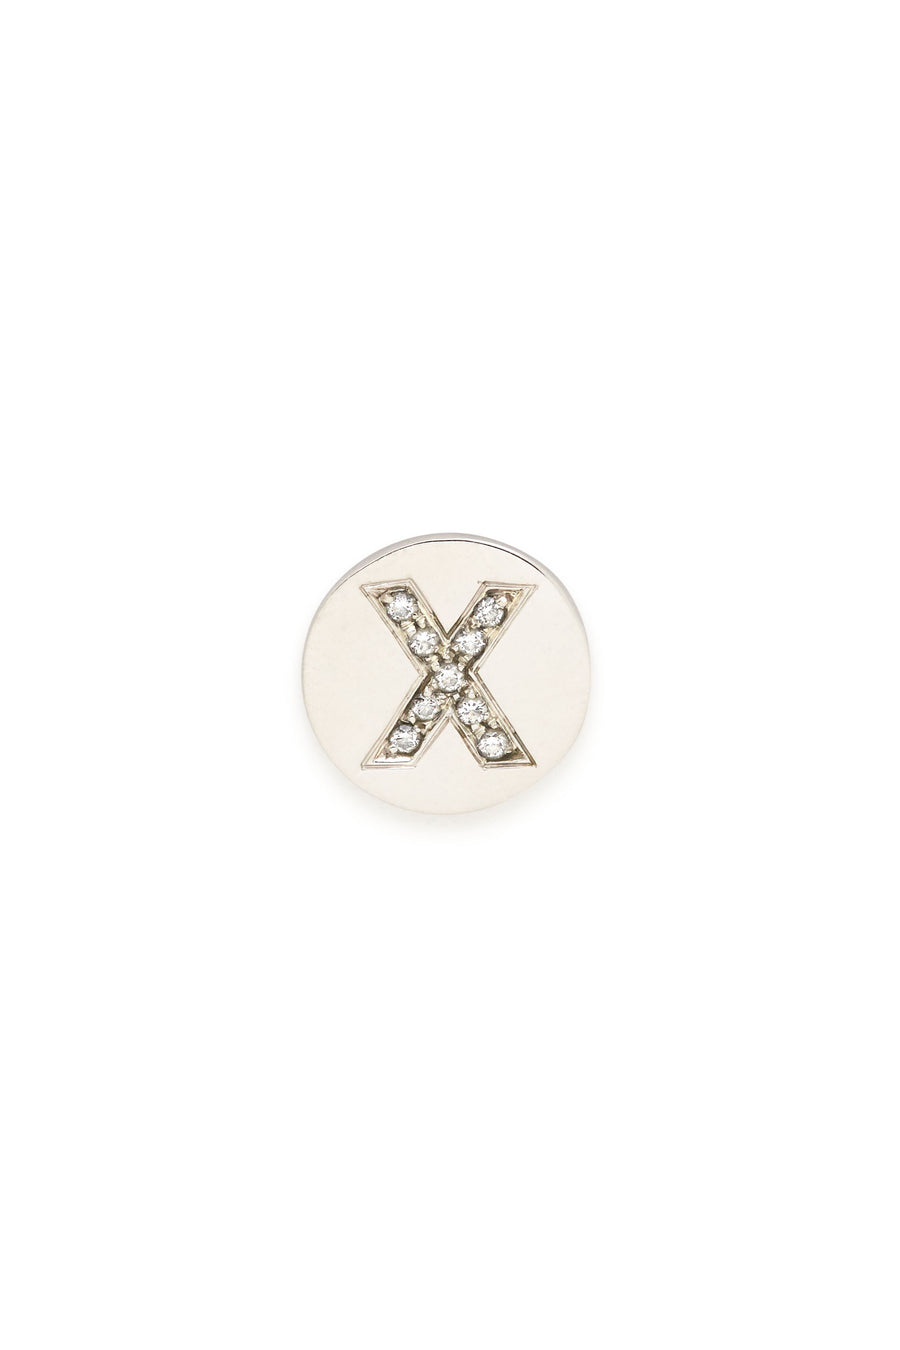 Sterling Silver & Diamond Initial Magnetic Charm - X